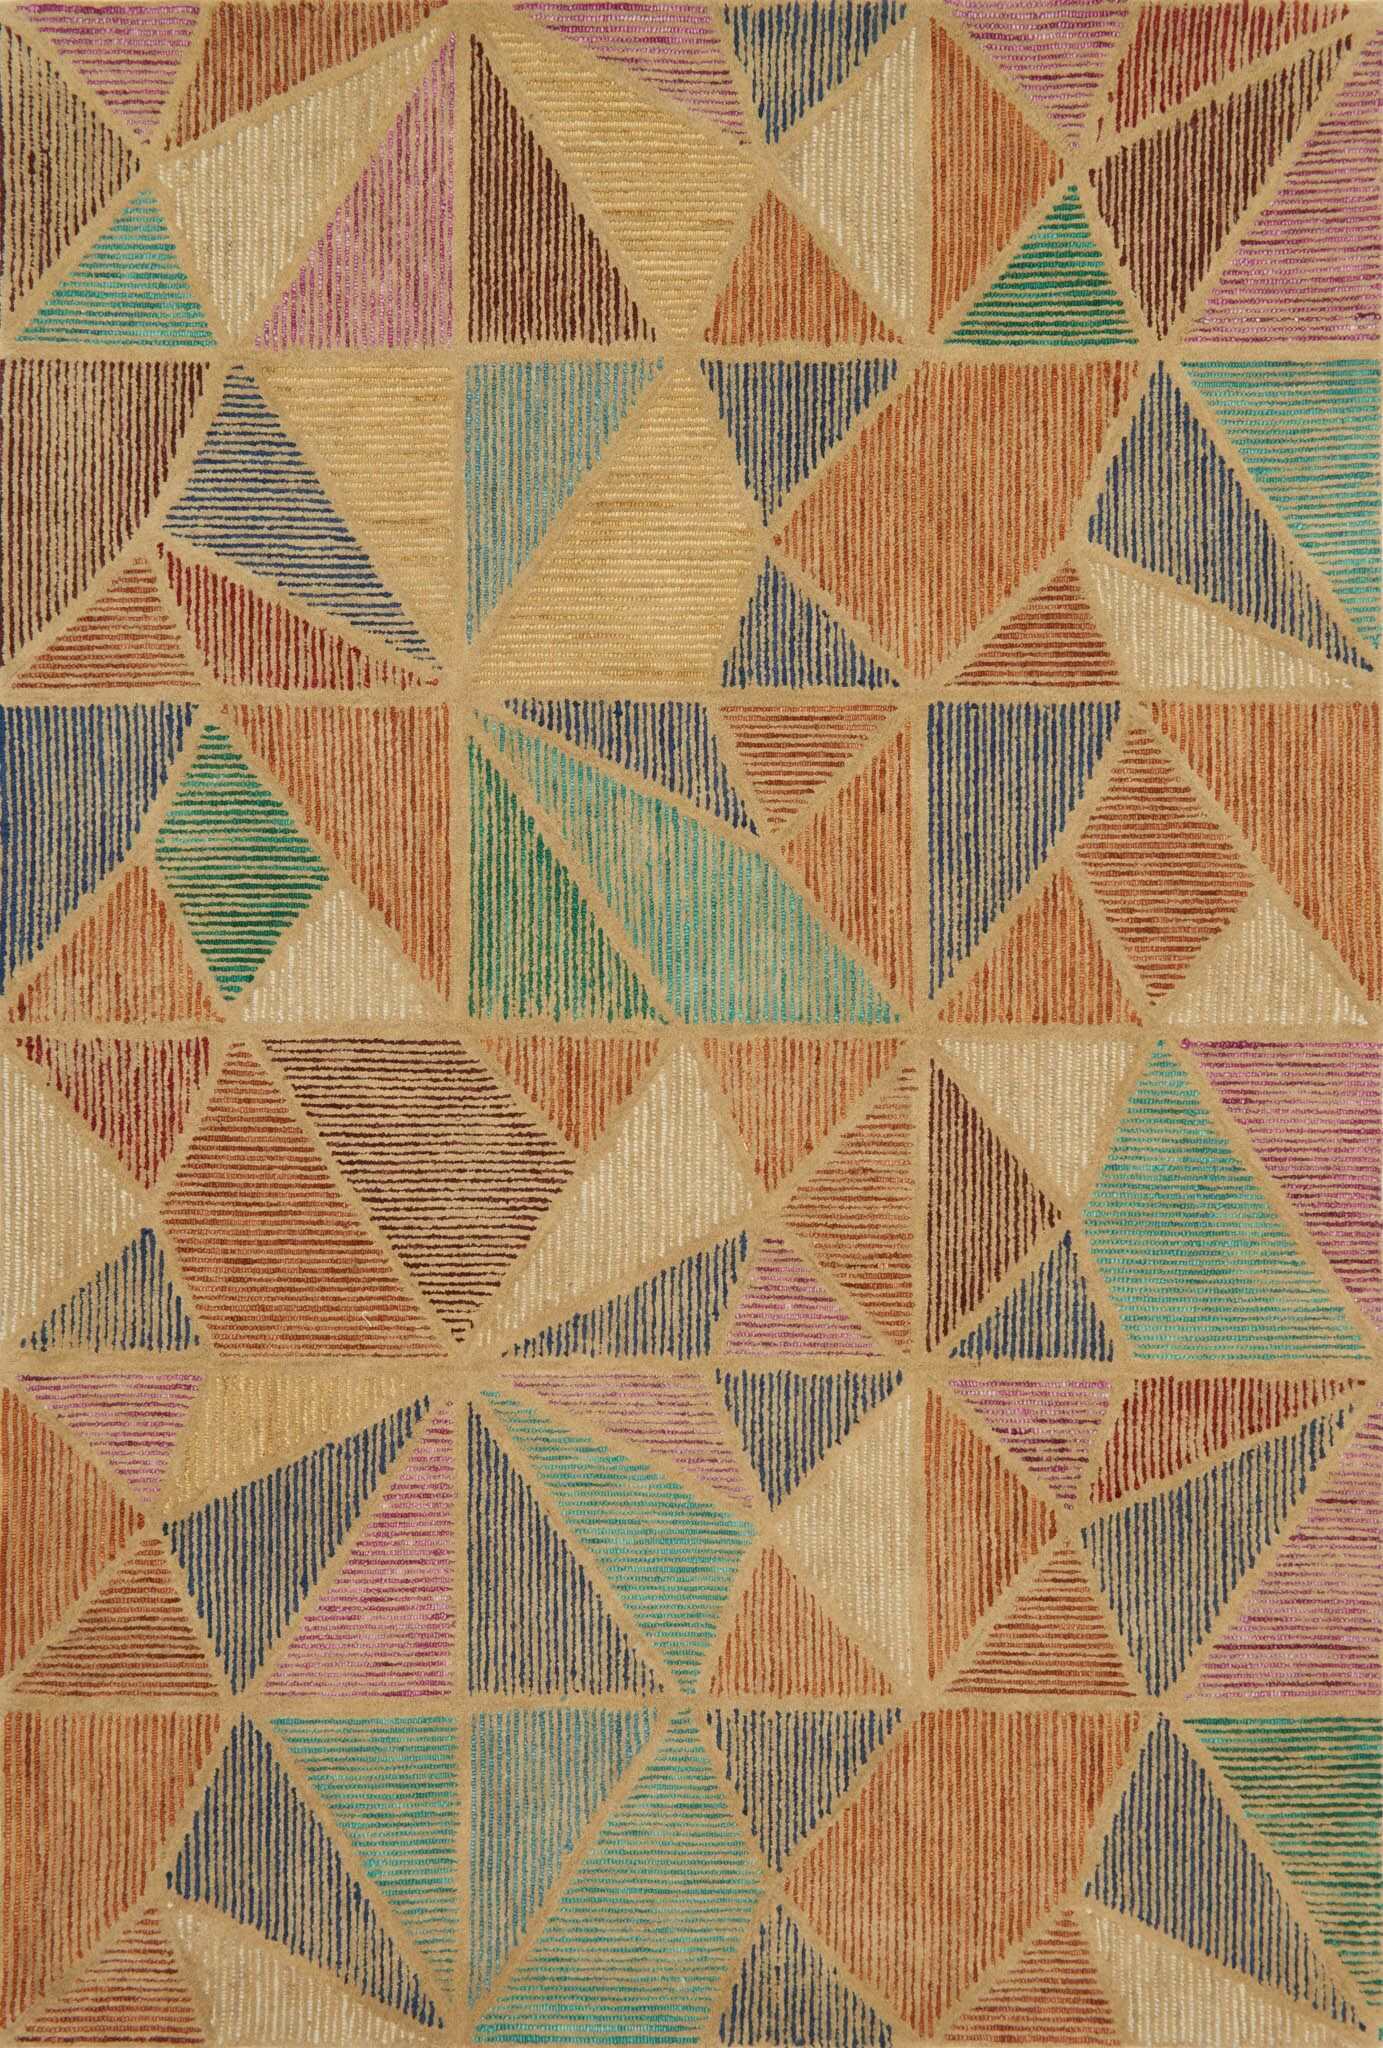 Wingman Hand-Tufted Brown/Green Area Rug Rug Size: Rectangle 3'6